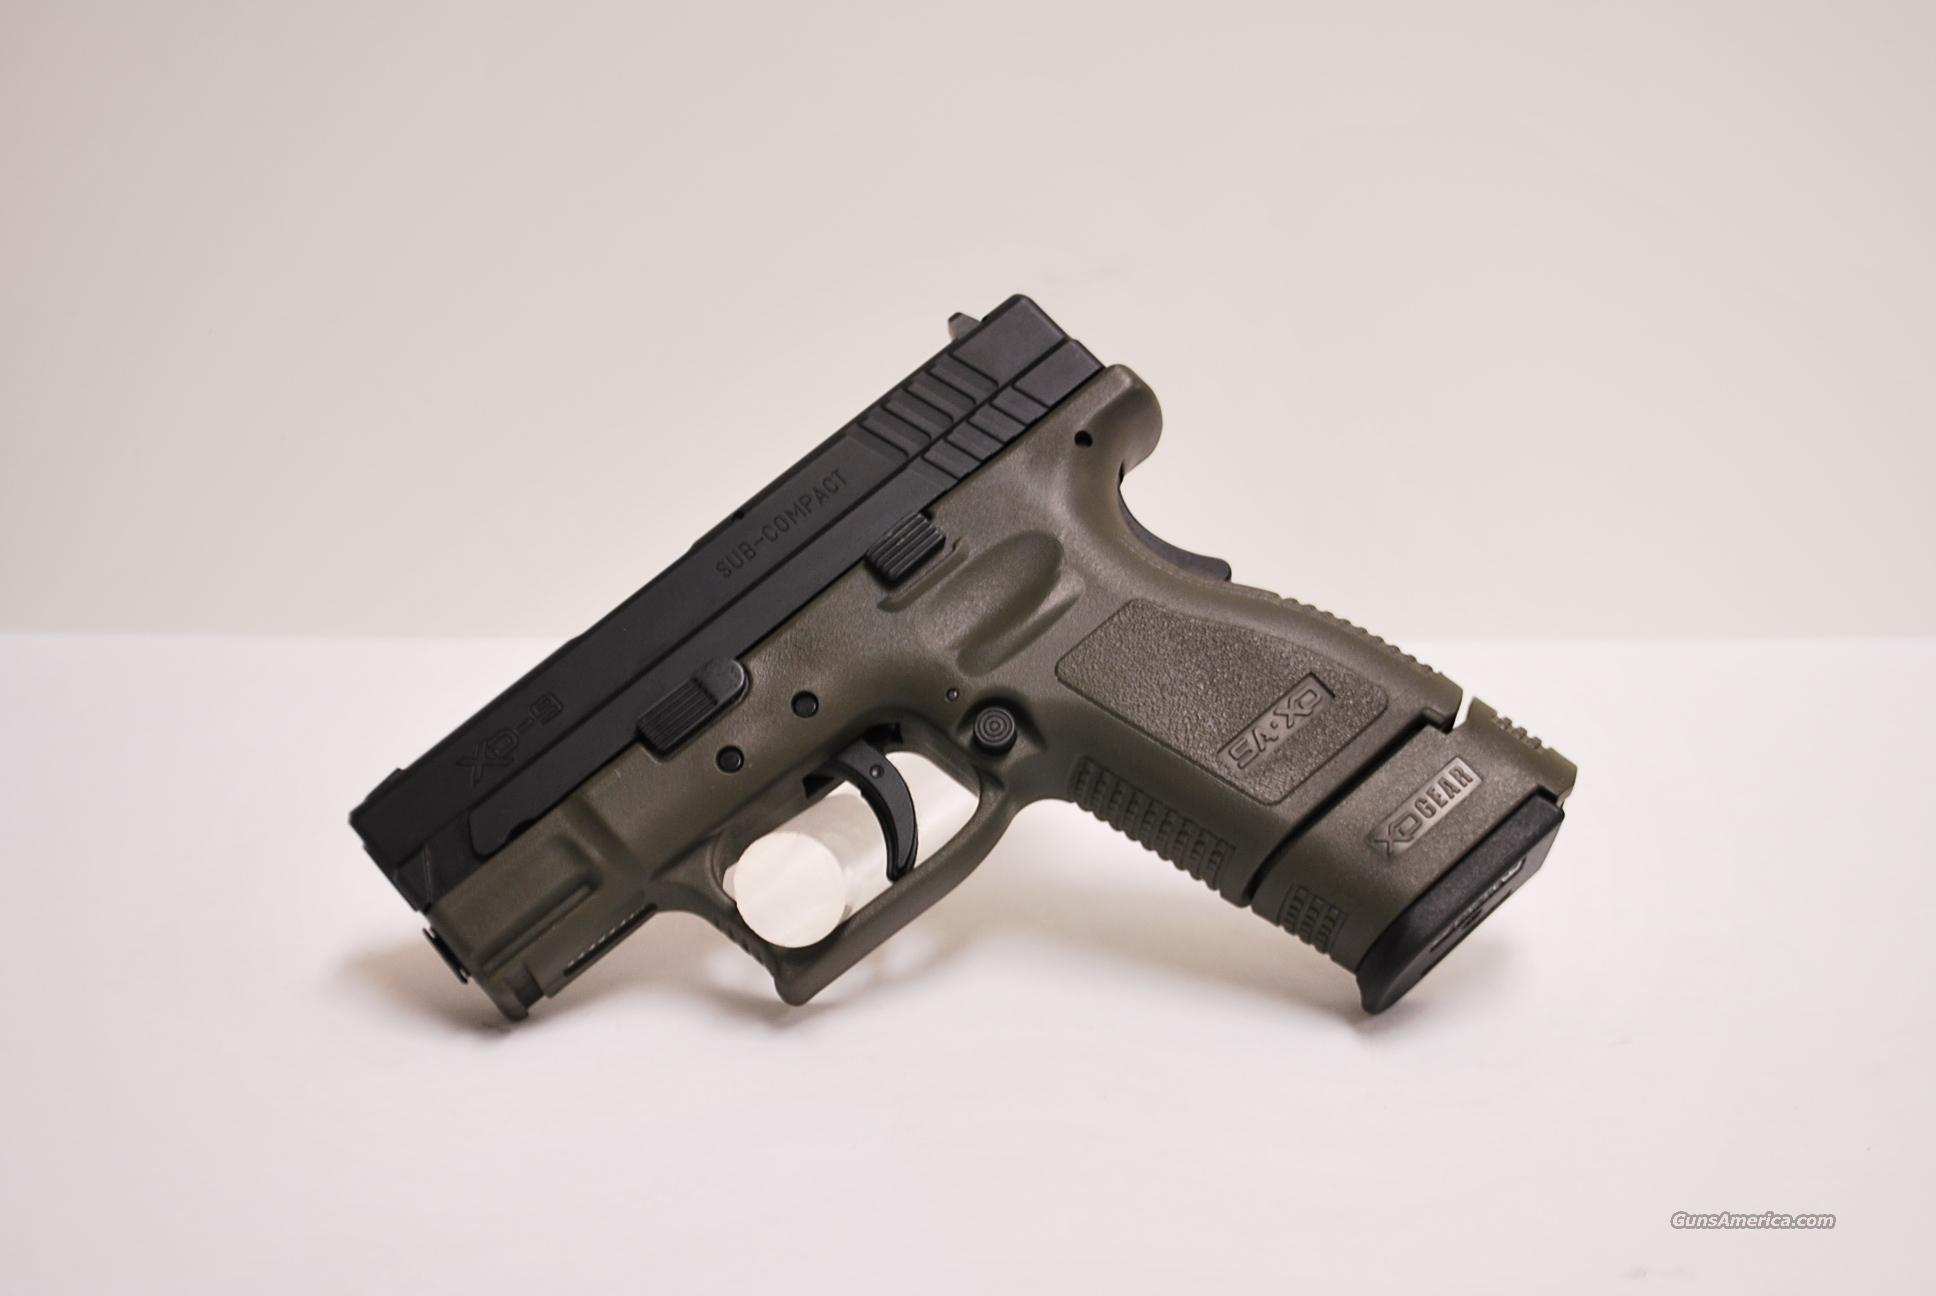 Springfield XD9 Subcompact 9mm, Olive Drab Bitone  Guns > Pistols > Springfield Armory Pistols > XD (eXtreme Duty)